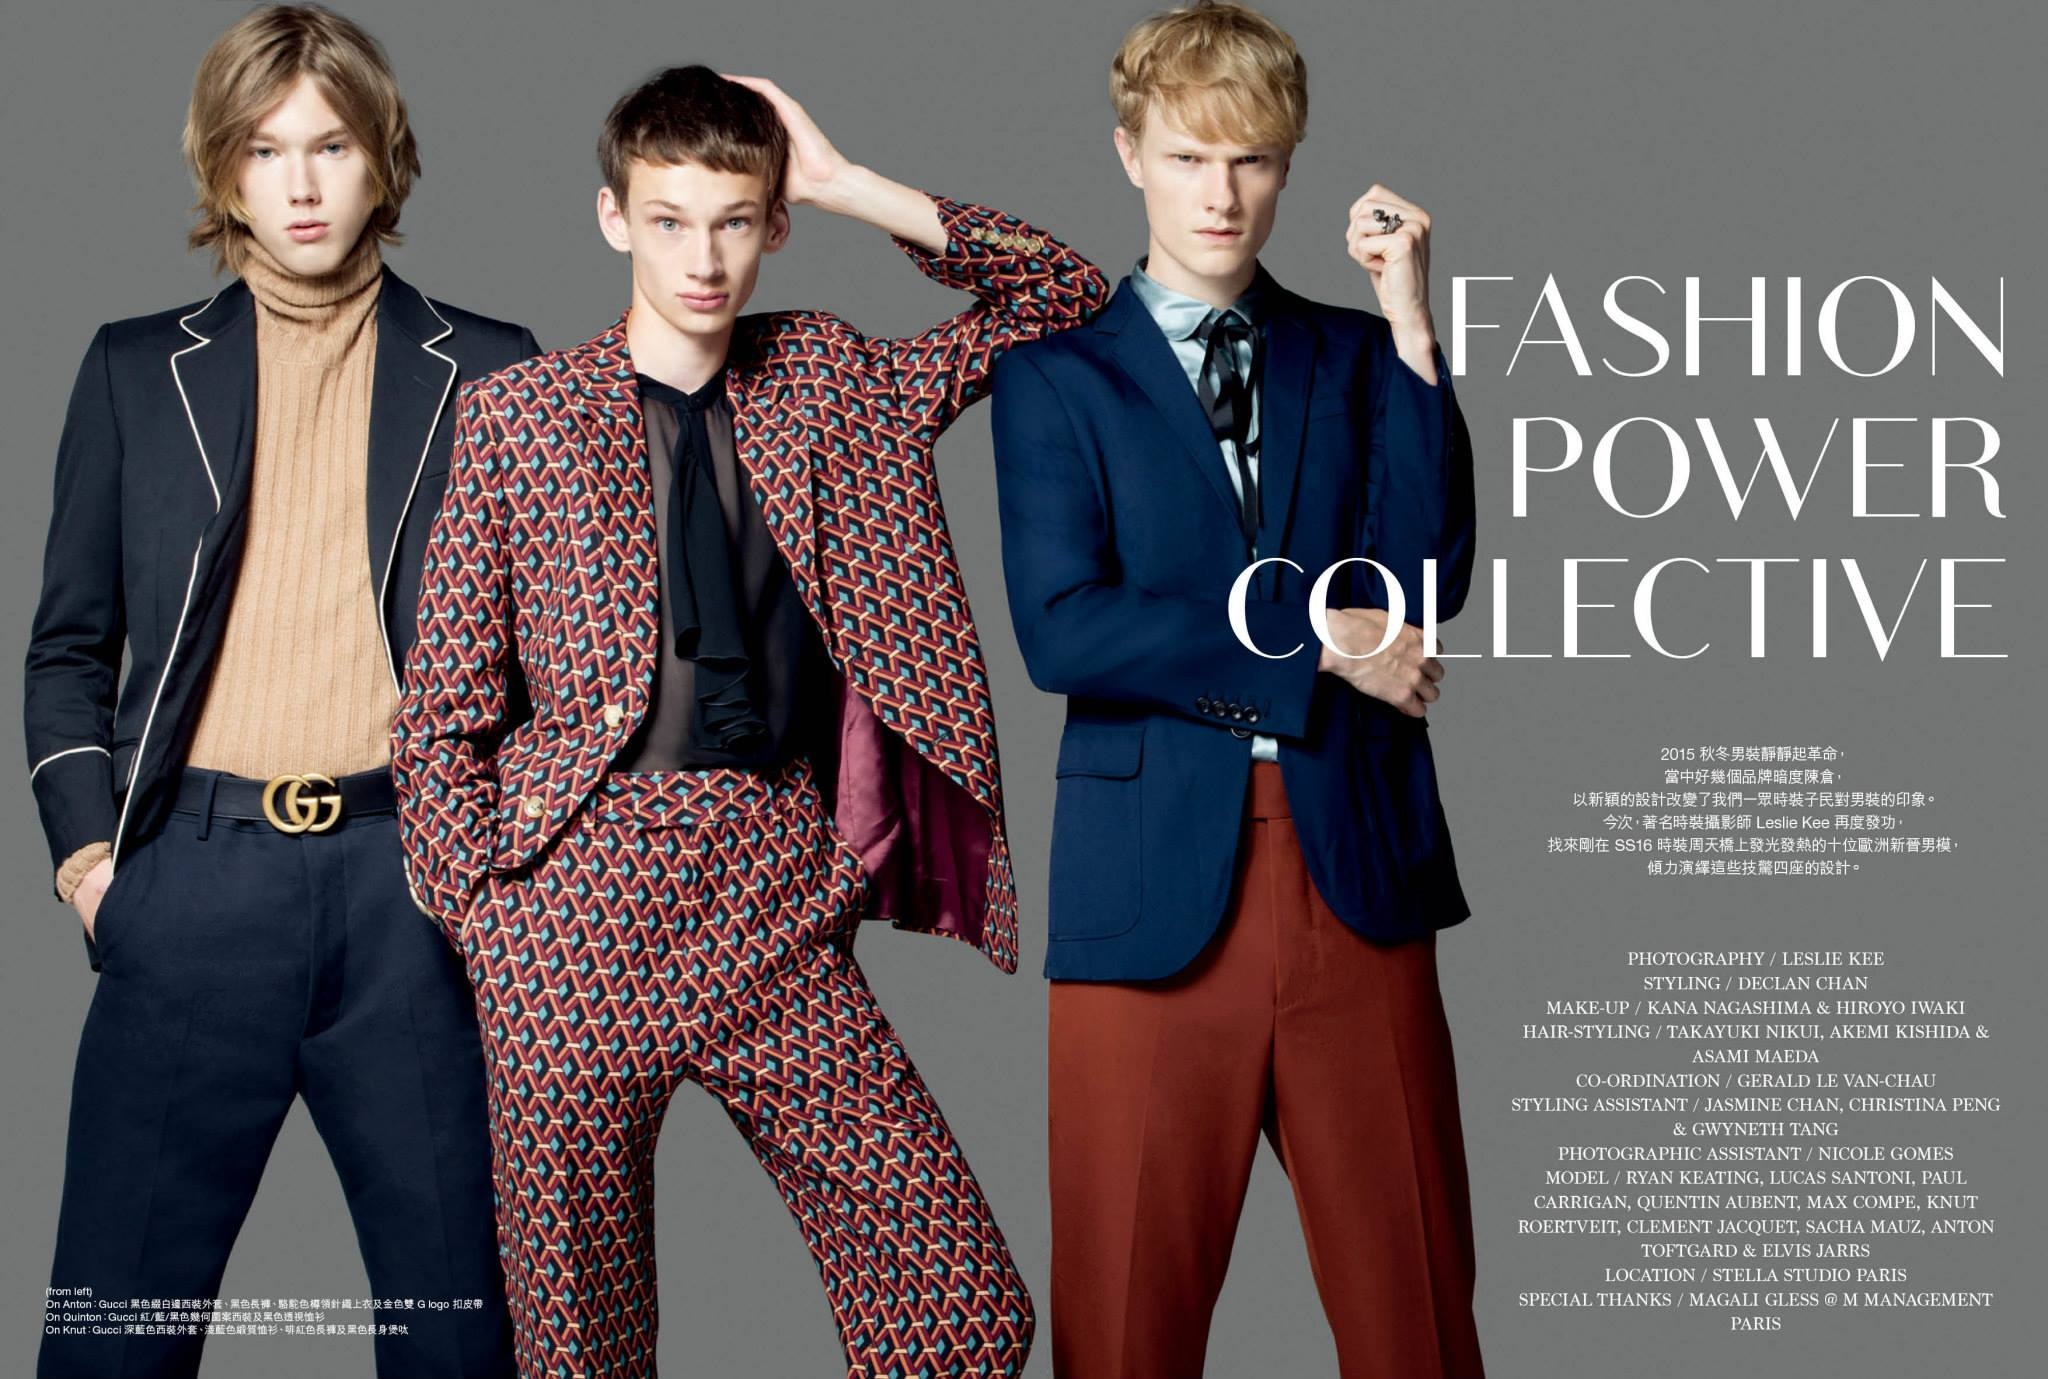 """Fashion Power Collective"" the new fashion editorial available at Men's Uno China August 2015 photography by Leslie Kee, styled by Declan Chan and starring by Ryan Keating, Lucas Santoni, Paul Carrigan, Quentin Aubent, Max Compe, Knut Roertveit, Clement Jacquet, Sacha Mauz, Anton toftgard and Elivs Jarrs at Stella Studio Paris."